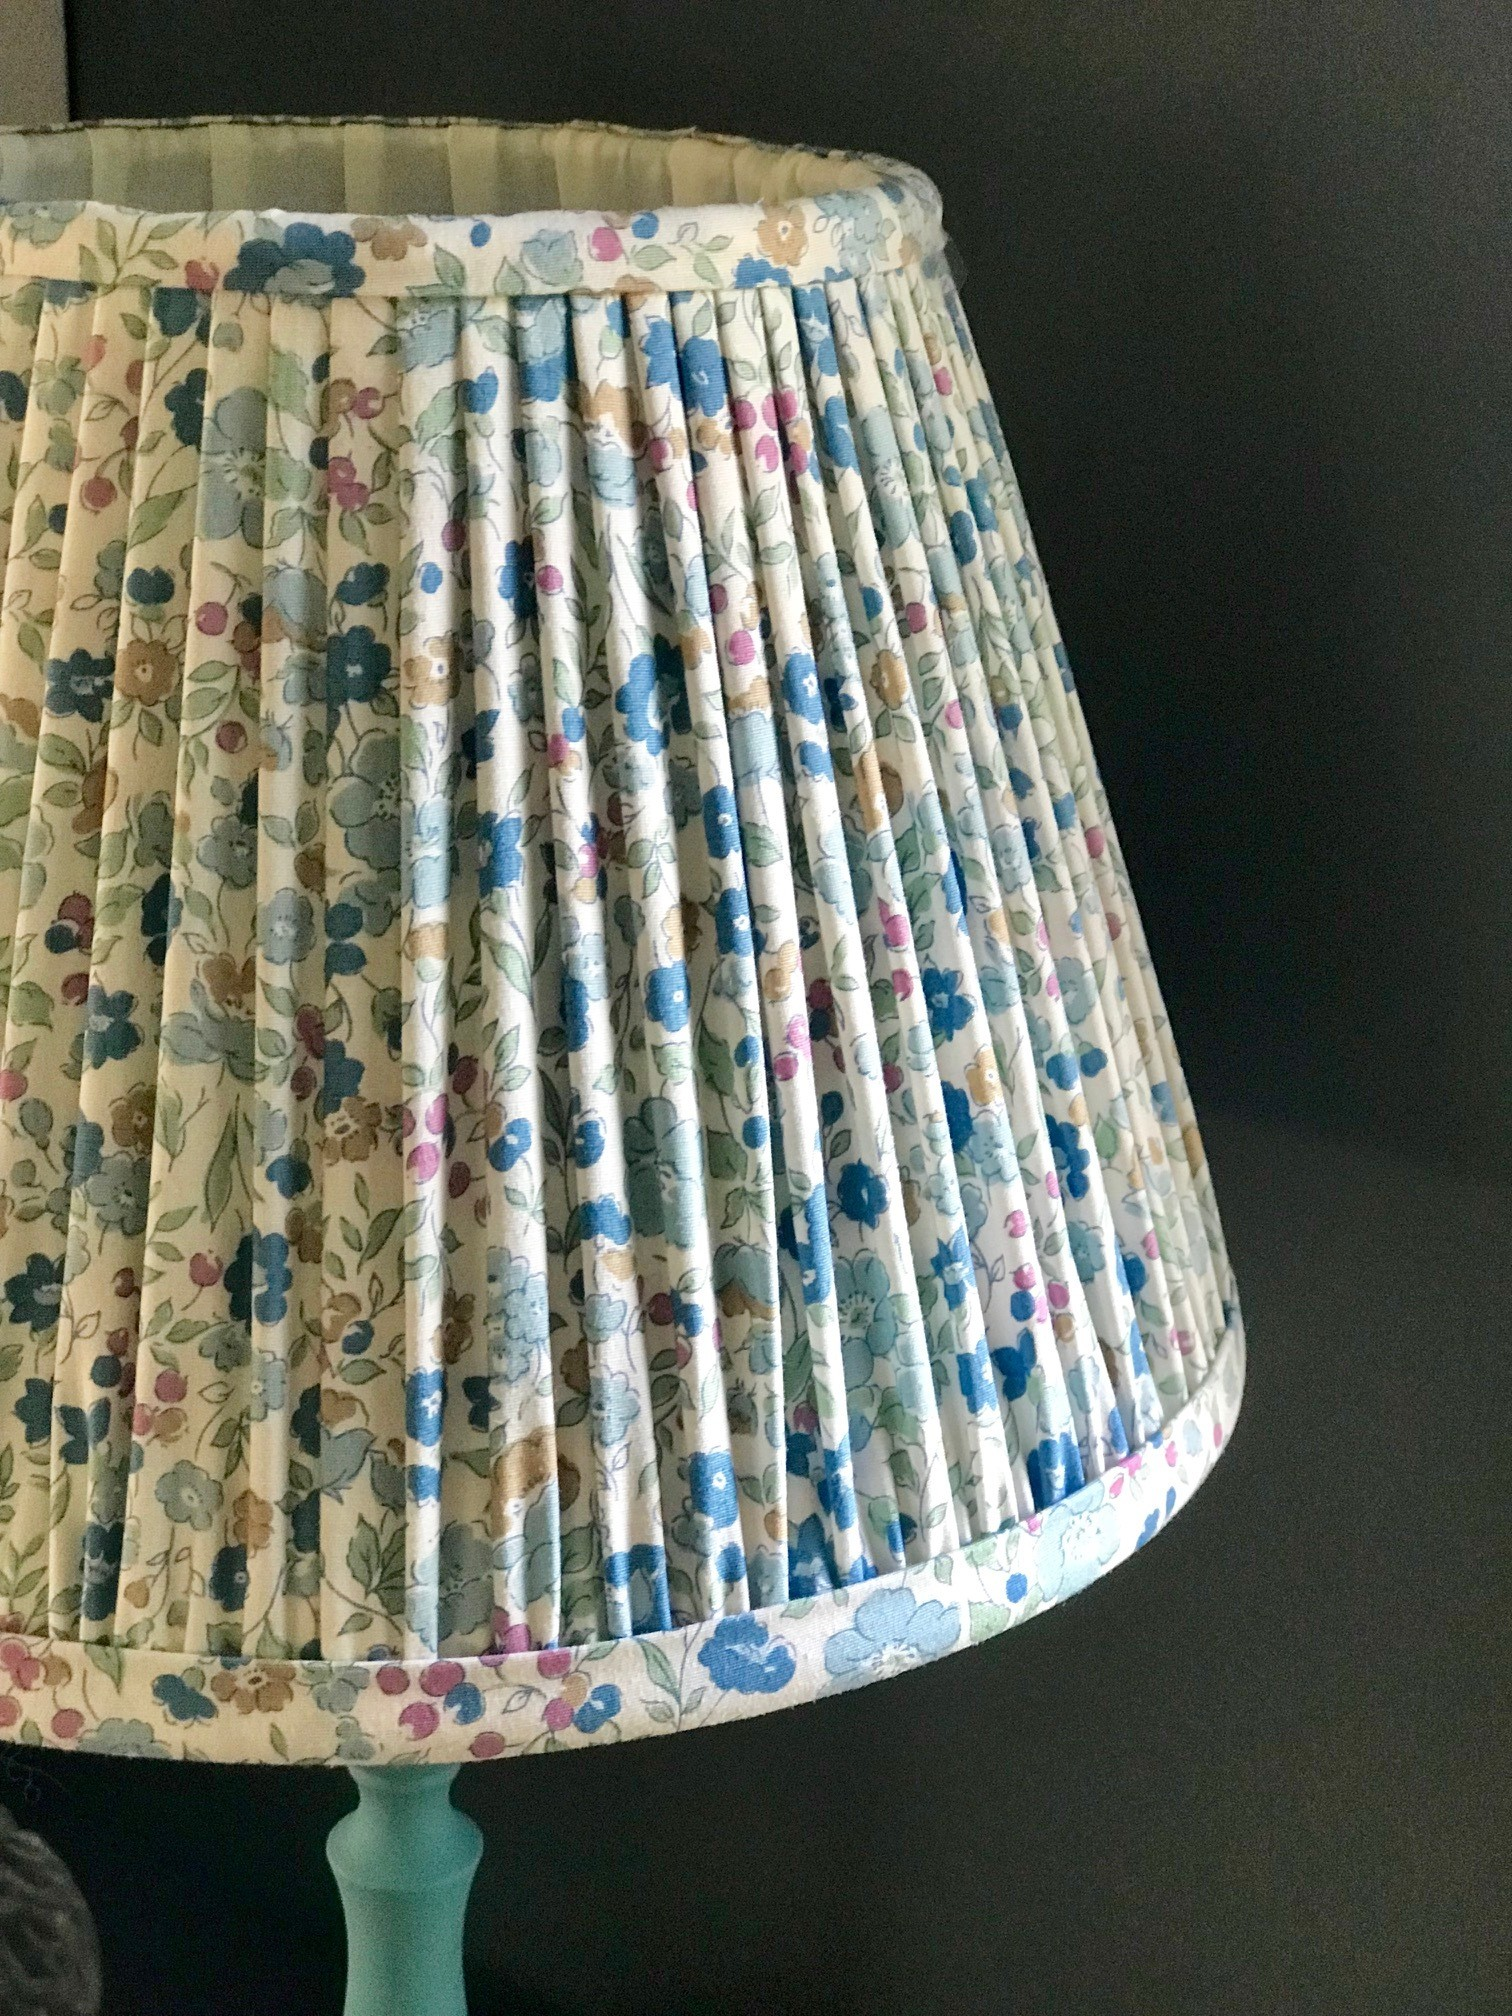 SOLD OUT Printed Liberty Print Cotton Lampshade - Blue & Pink